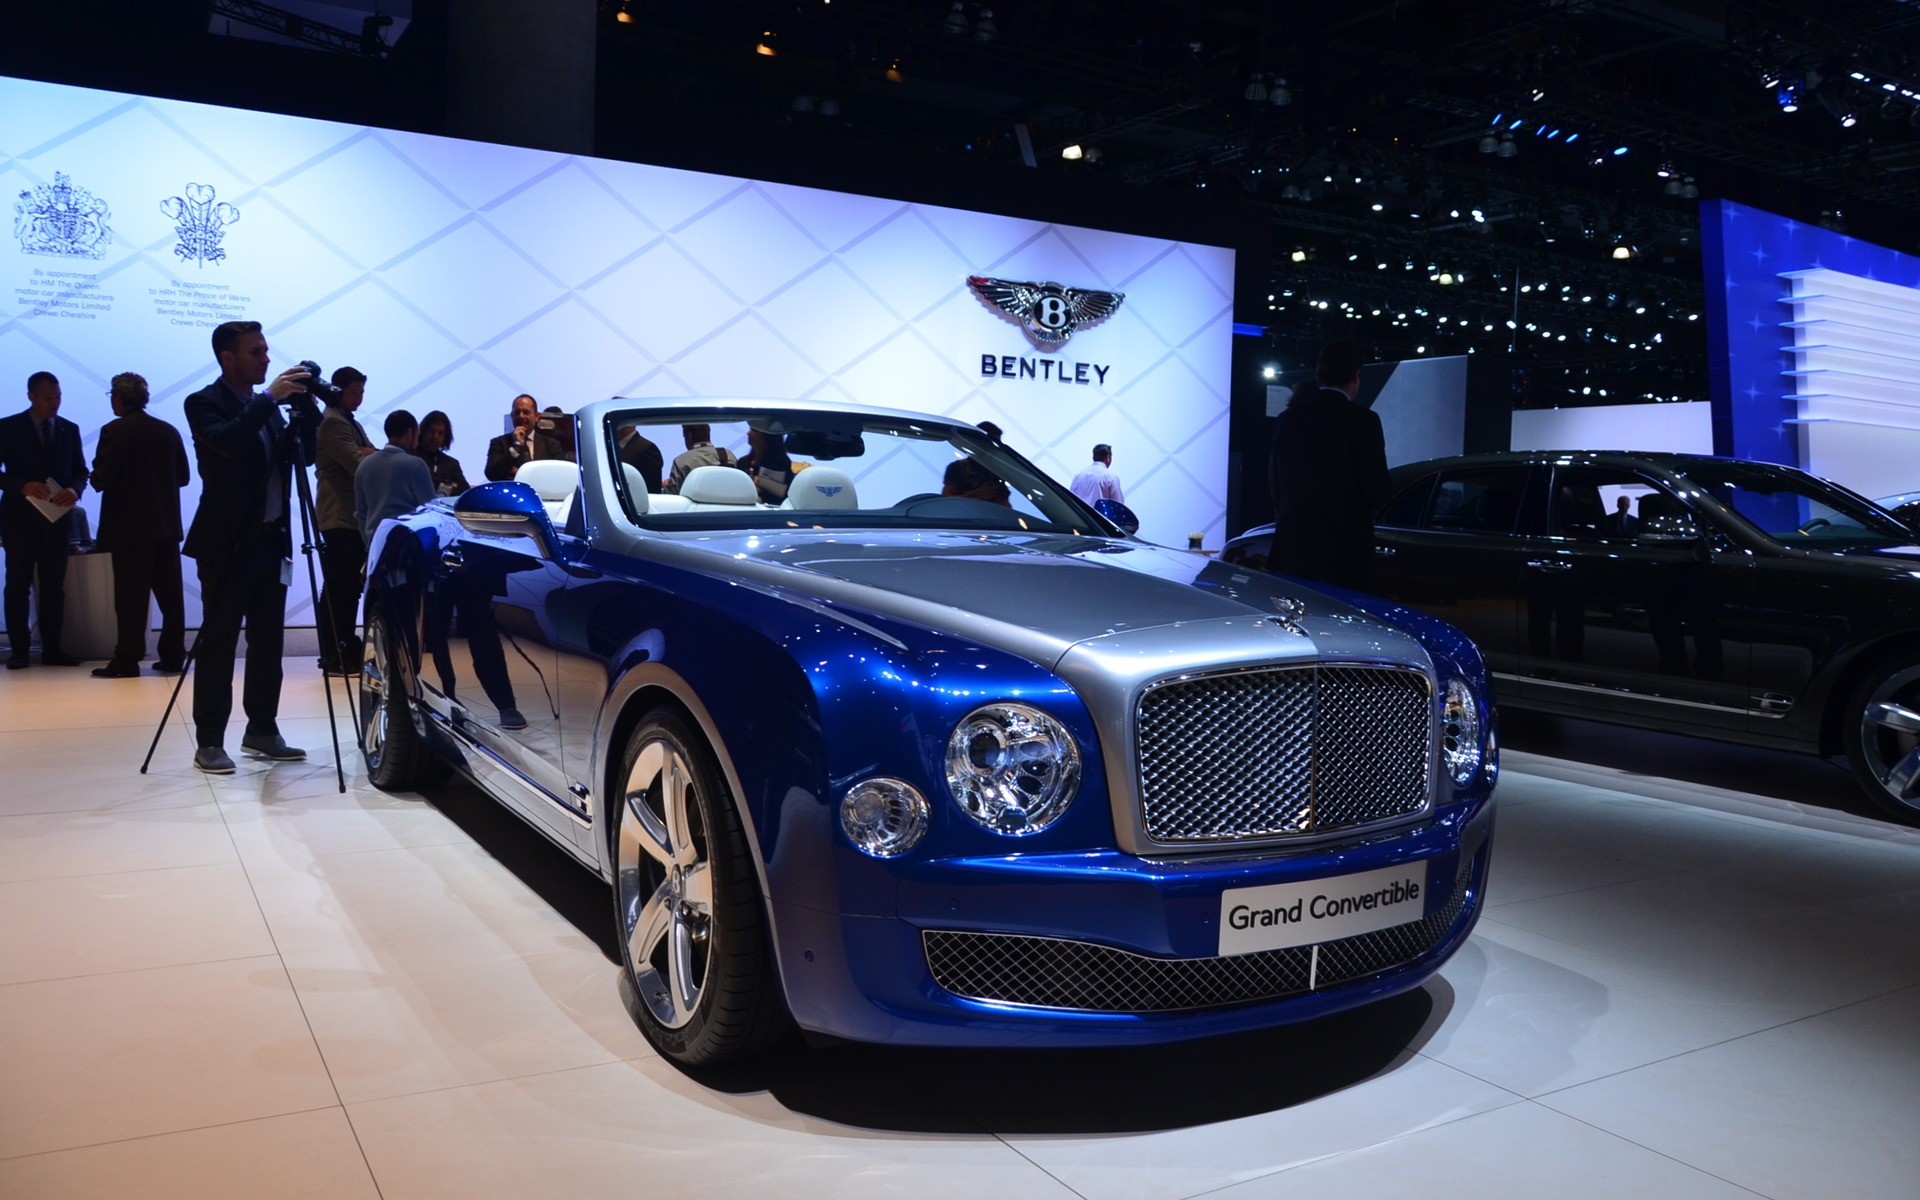 bentley mulsanne autotrader with Used 2015 Bentley Mulsanne For Sale Pricing Features on 2017 Bentley Mulsanne and 2017 Bentley Flying Spur V8 S  Geneva Auto Show 250548 in addition The Car That Killed Pontiac The 2004 2006 Gto Gearheads additionally Queen Elizabeth Bentley Mulsanne Sale Bidding War Interest Pour Uk Us Australia 1553635 as well Classic Mercedes moreover Bentley Car Cost.